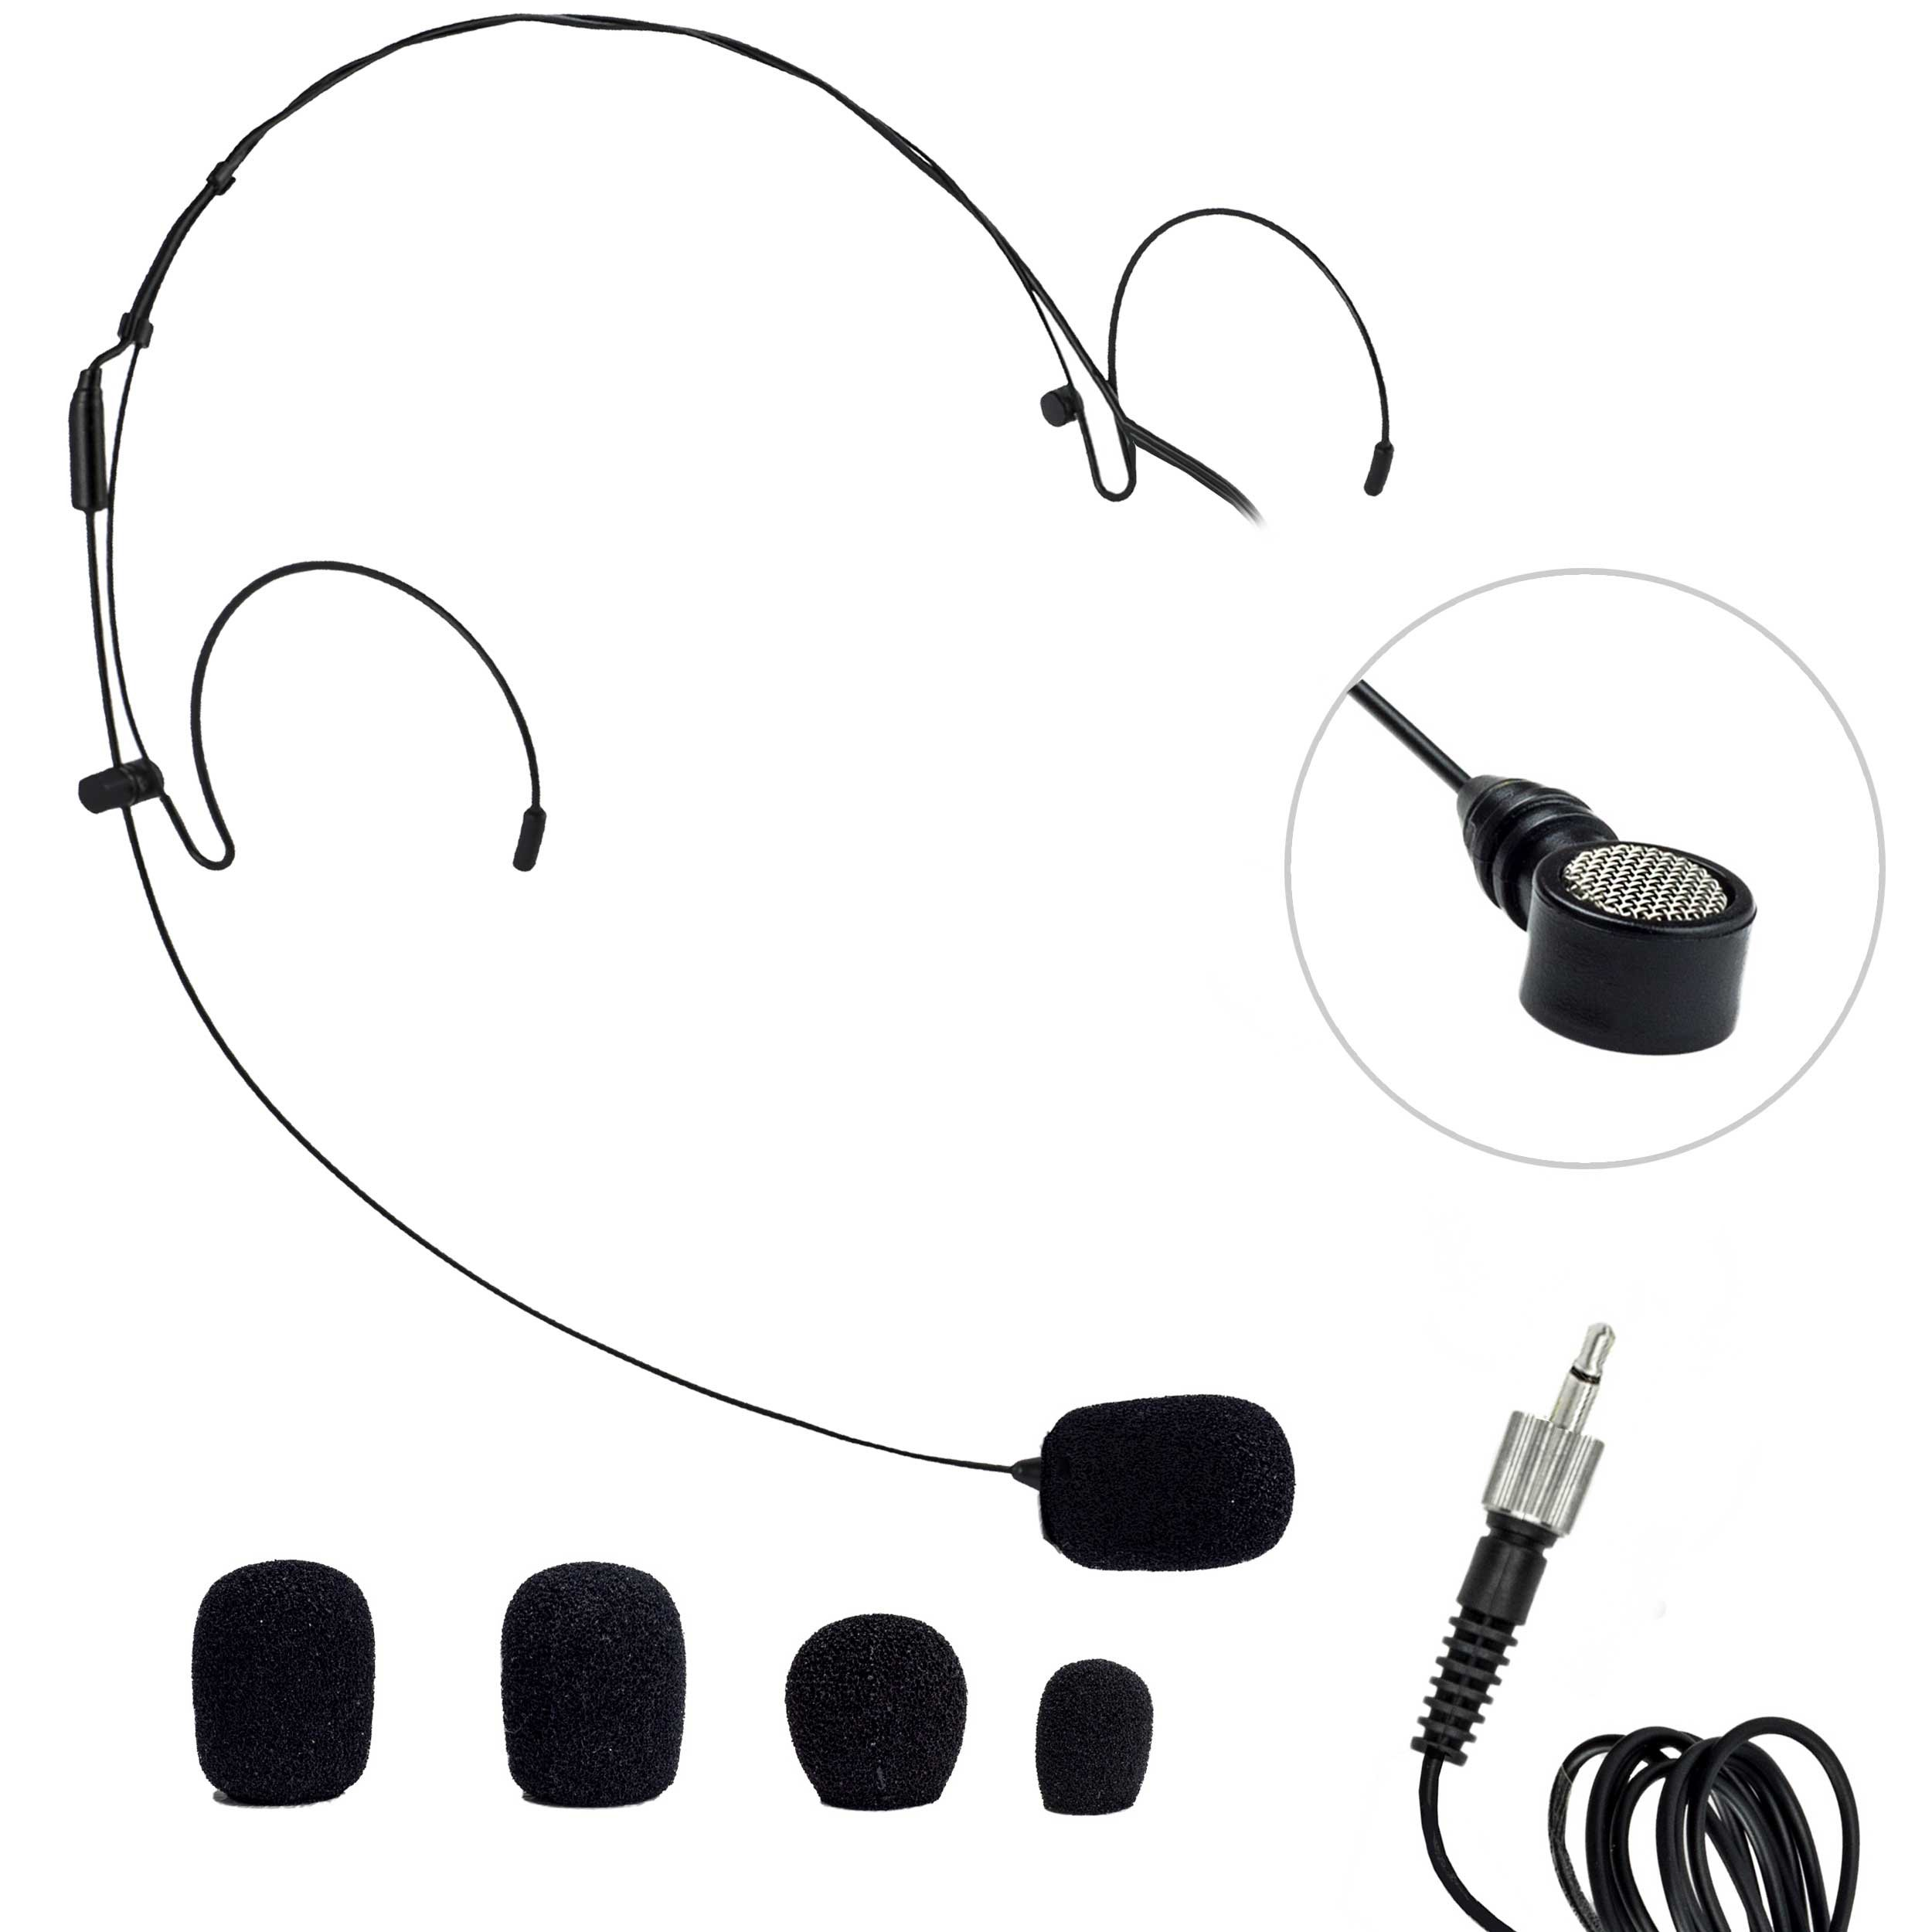 Nady HM-20U Headset Microphone Black 3.5 MM by Nady